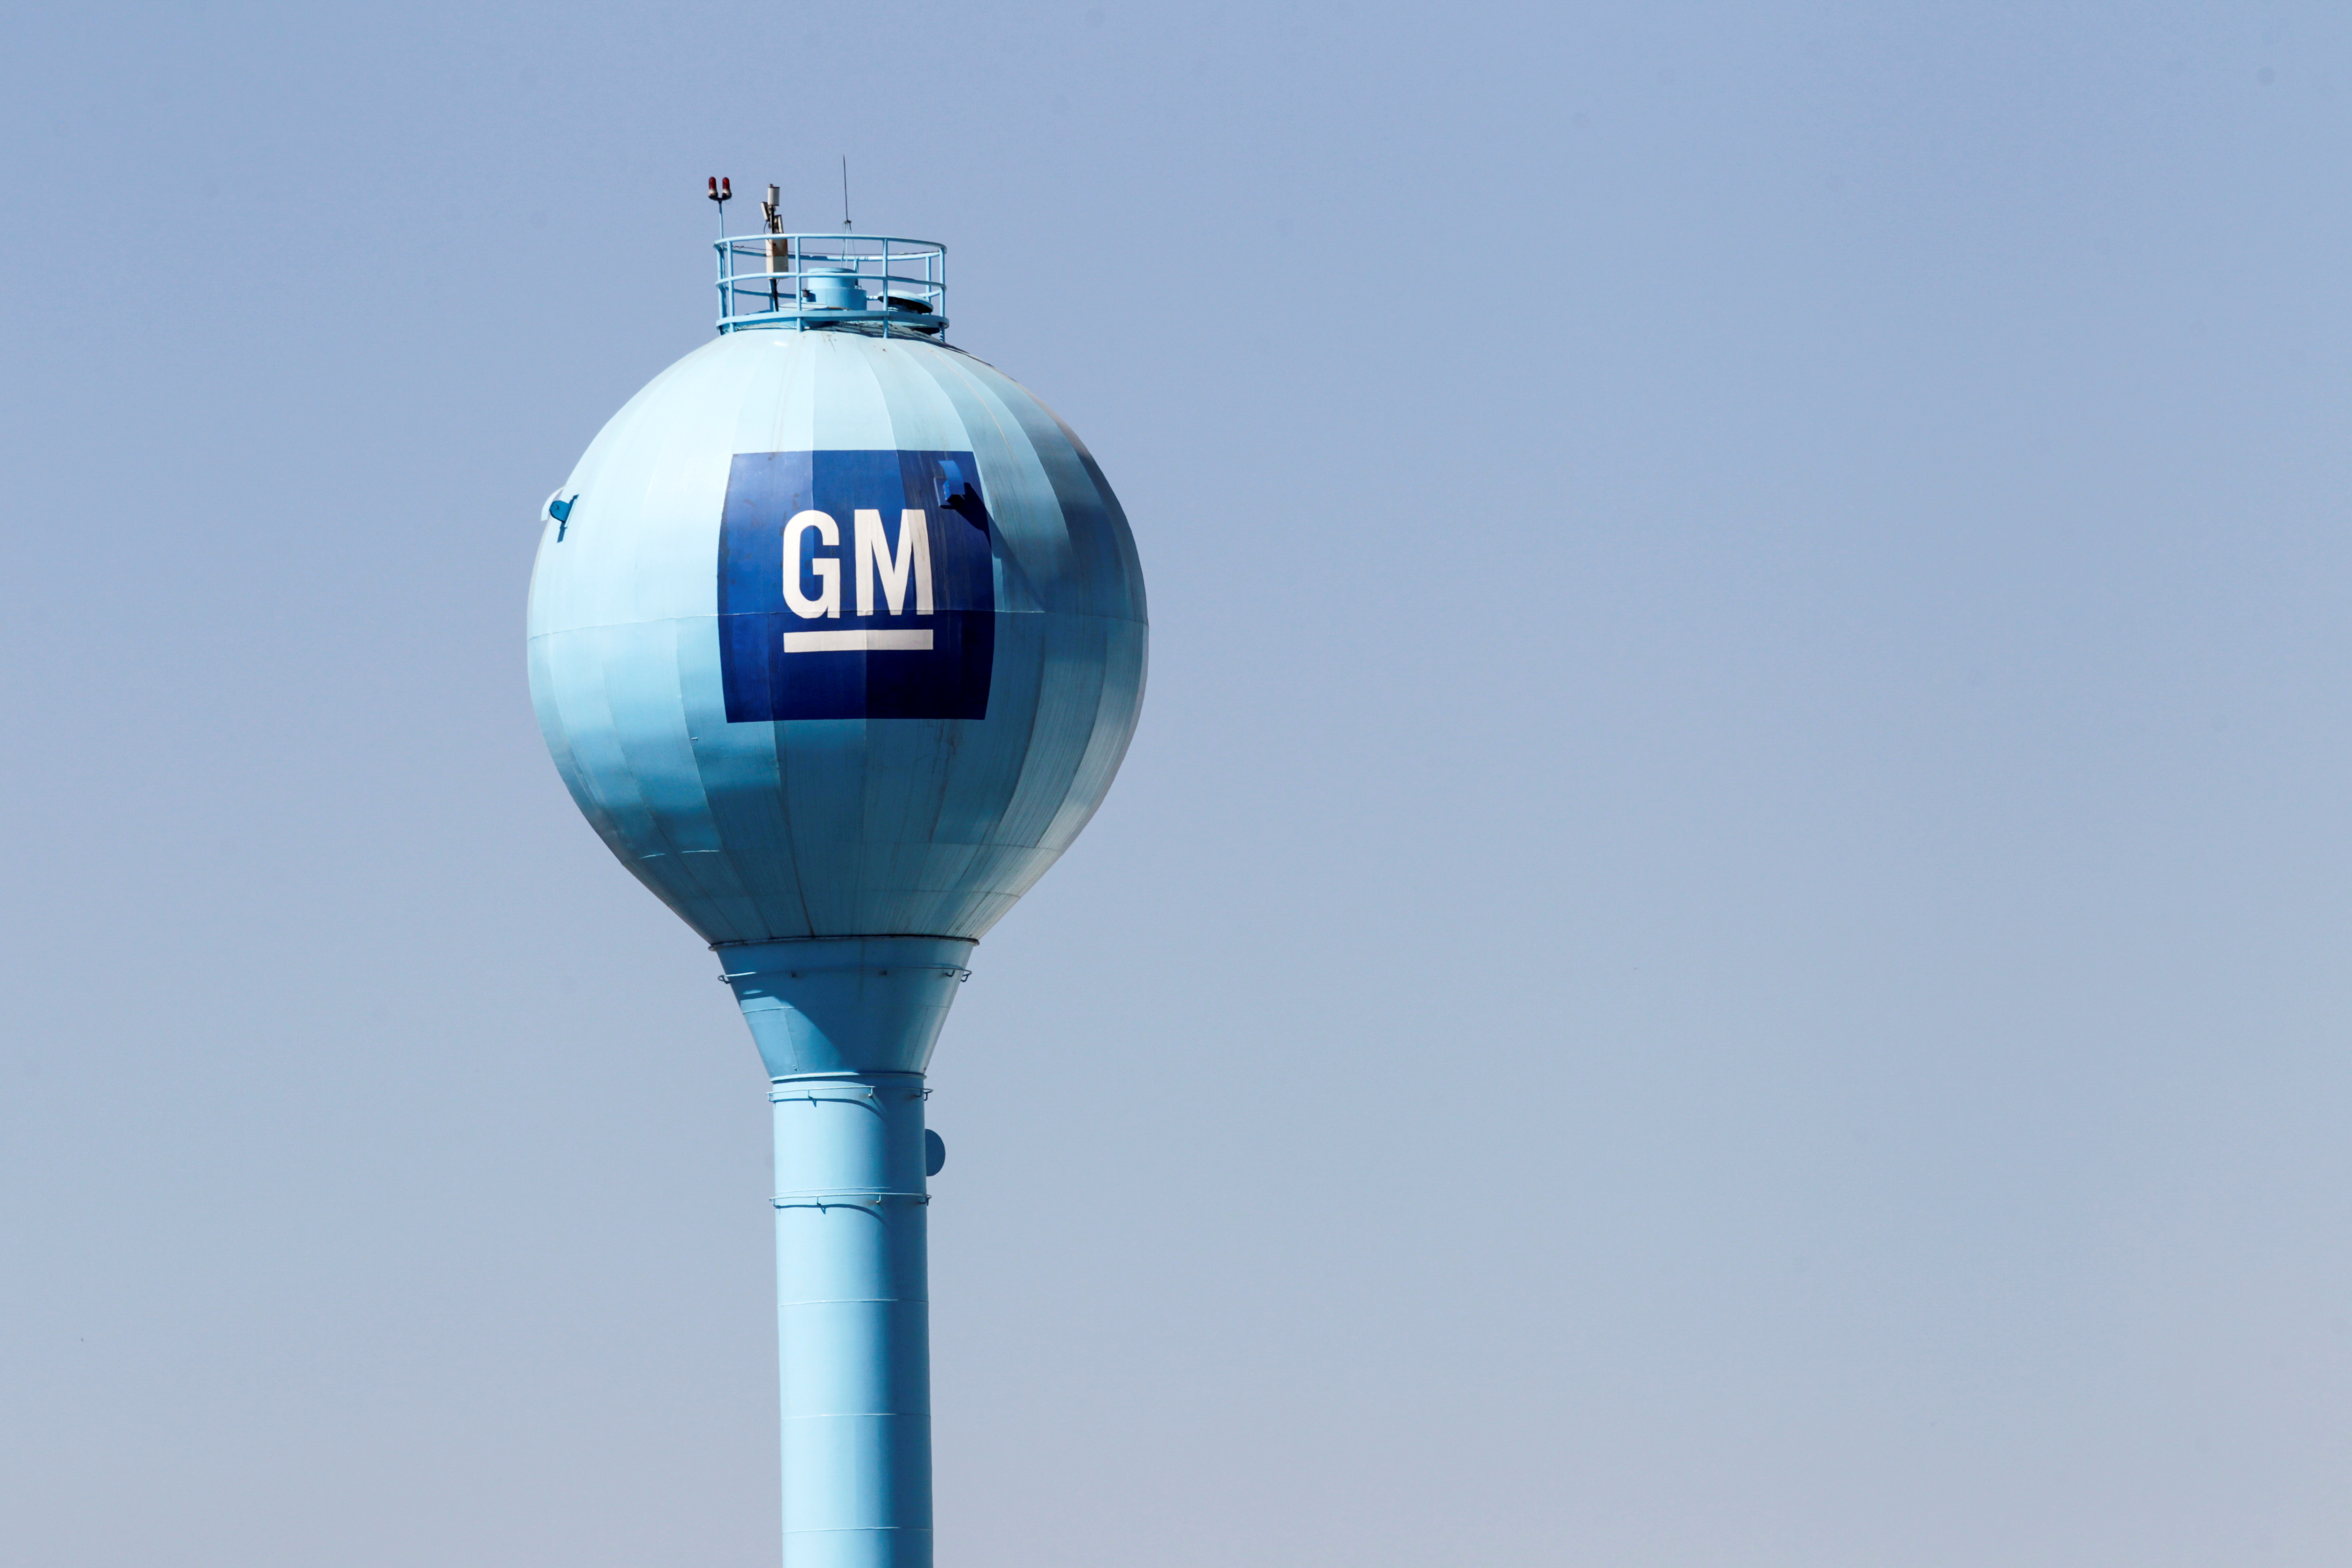 The GM logo is seen on a water tank of the General Motors assembly plant in Ramos Arizpe, in Coahuila state, Mexico February 11, 2021. REUTERS/Daniel Becerril